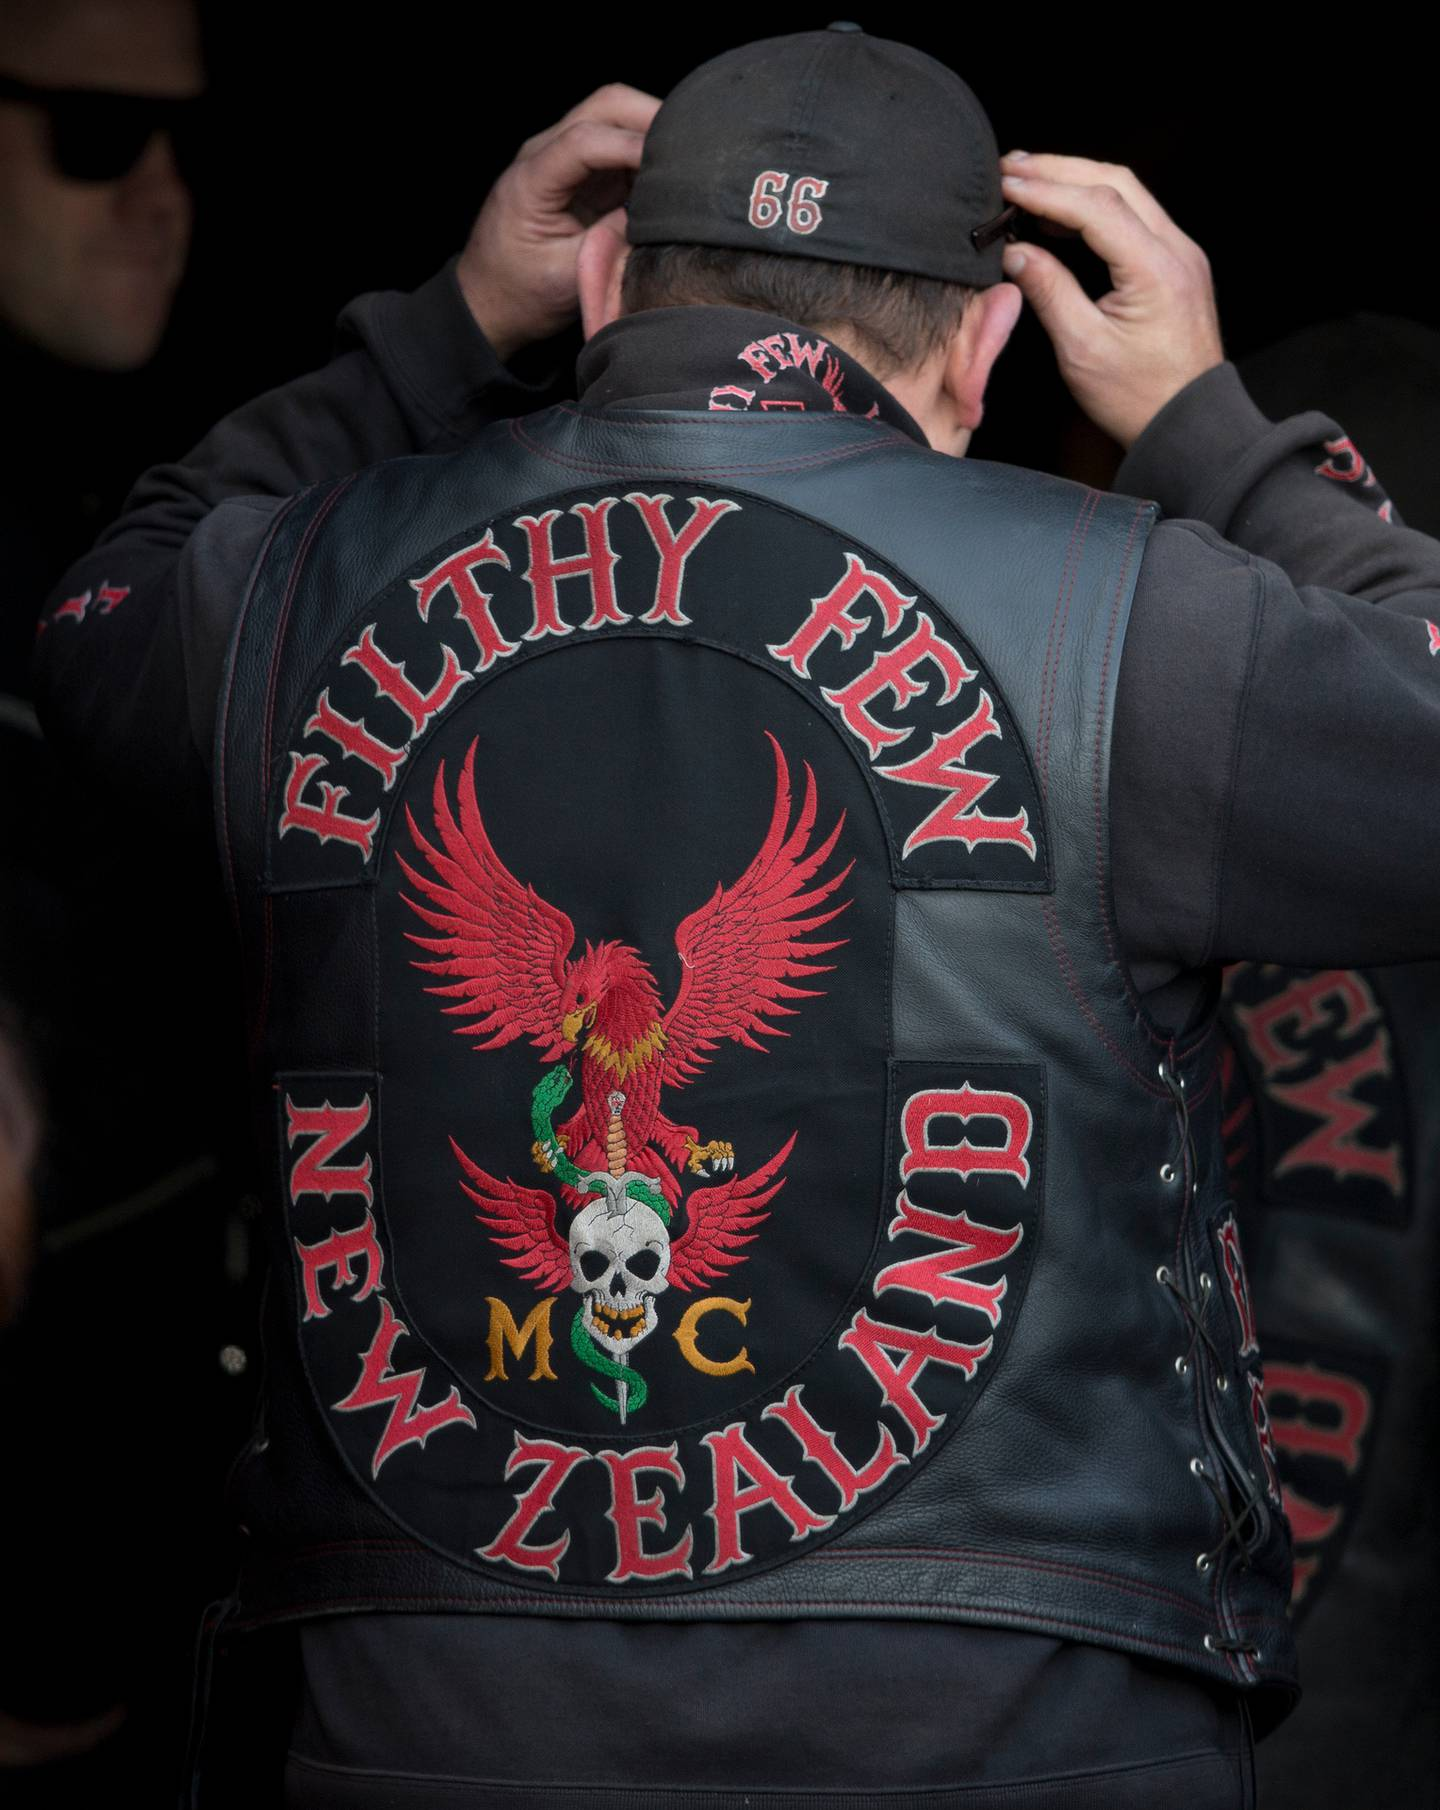 The Filthy Few gang patch. Photo / NZH